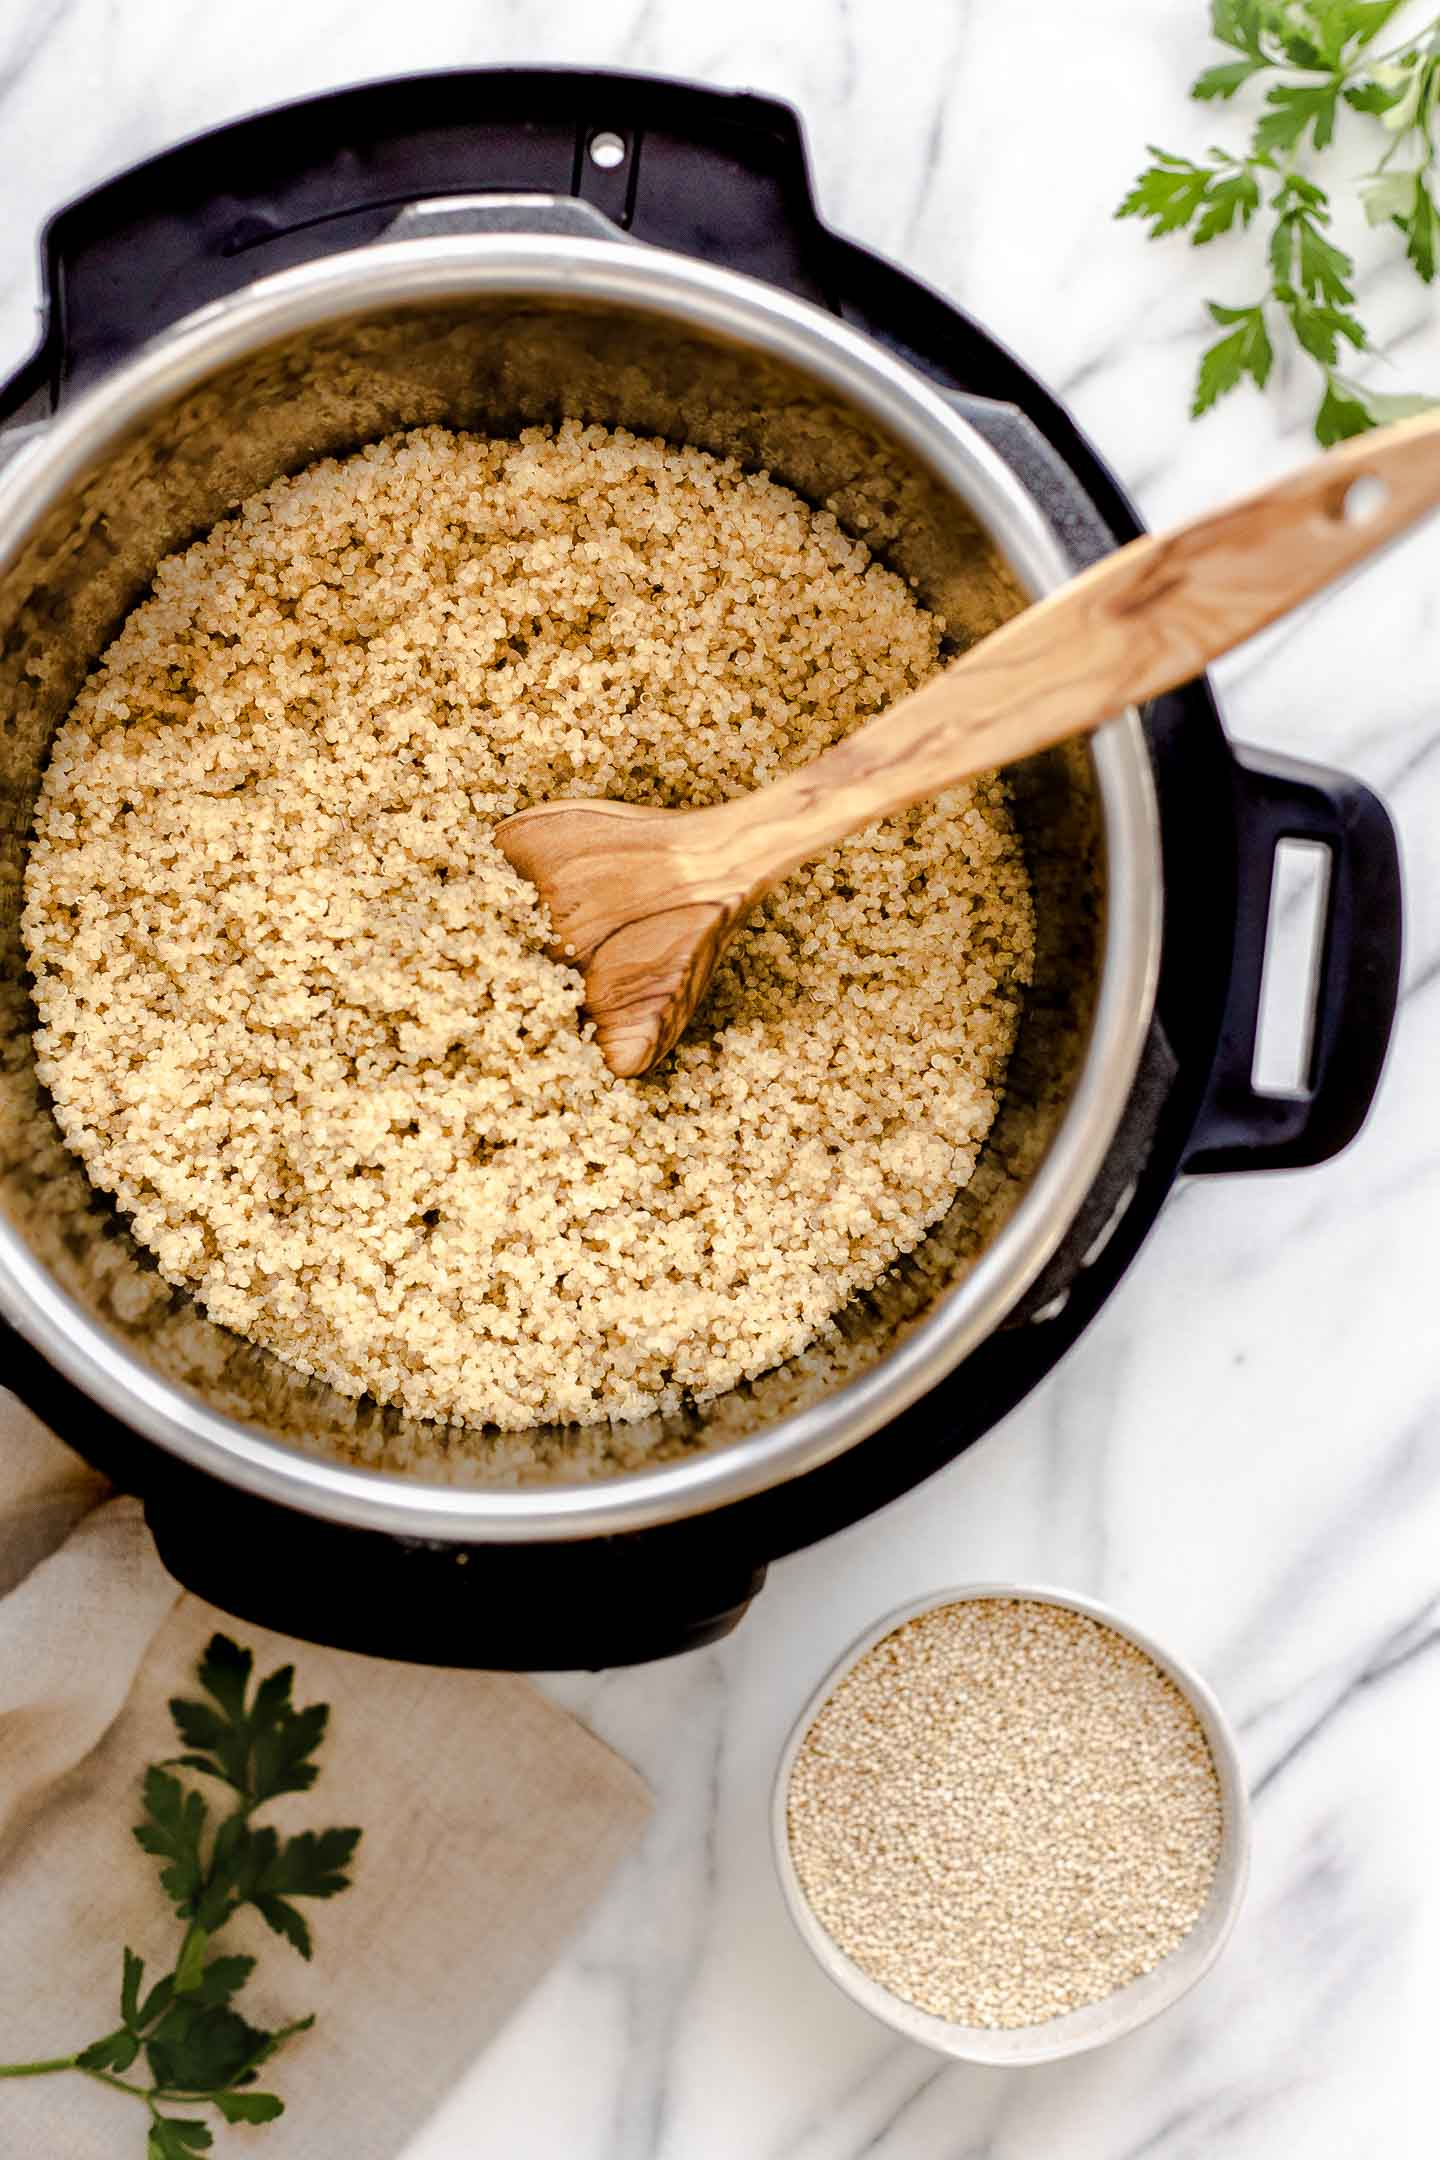 Instant Pot Quinoa - the perfect fluffy and delicious! Not mushy! It's all about the water to quinoa ratio #instantpotquinoa #perfect quinoa